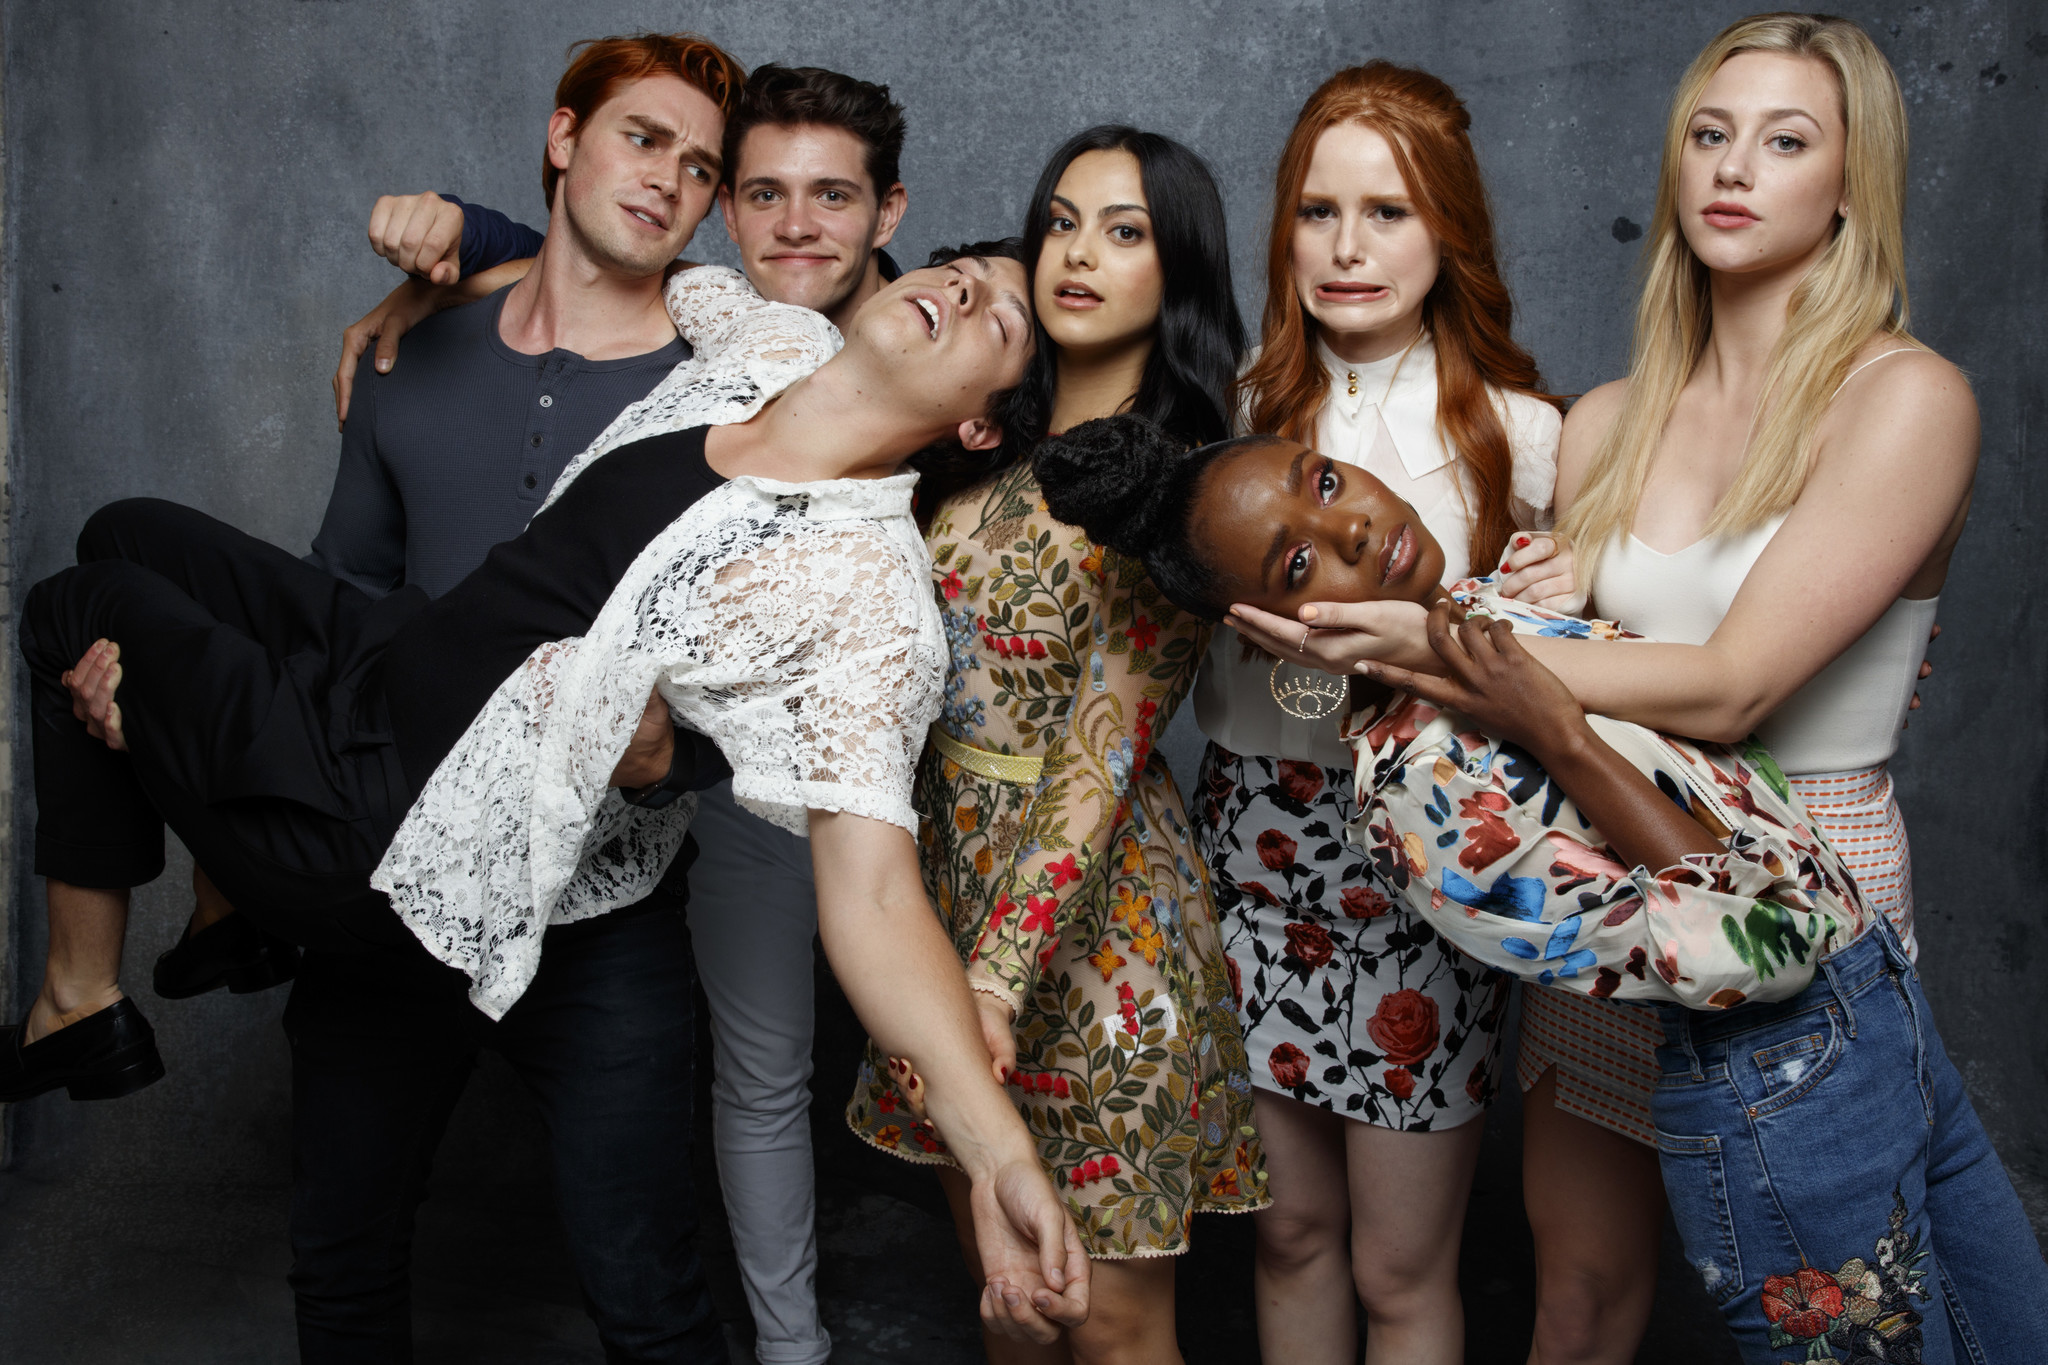 Riverdale 2017 Tv Series Images Madelaine Hd Wallpaper: 'Riverdale' Cast On Season 2, Toni Topaz, And The Show's